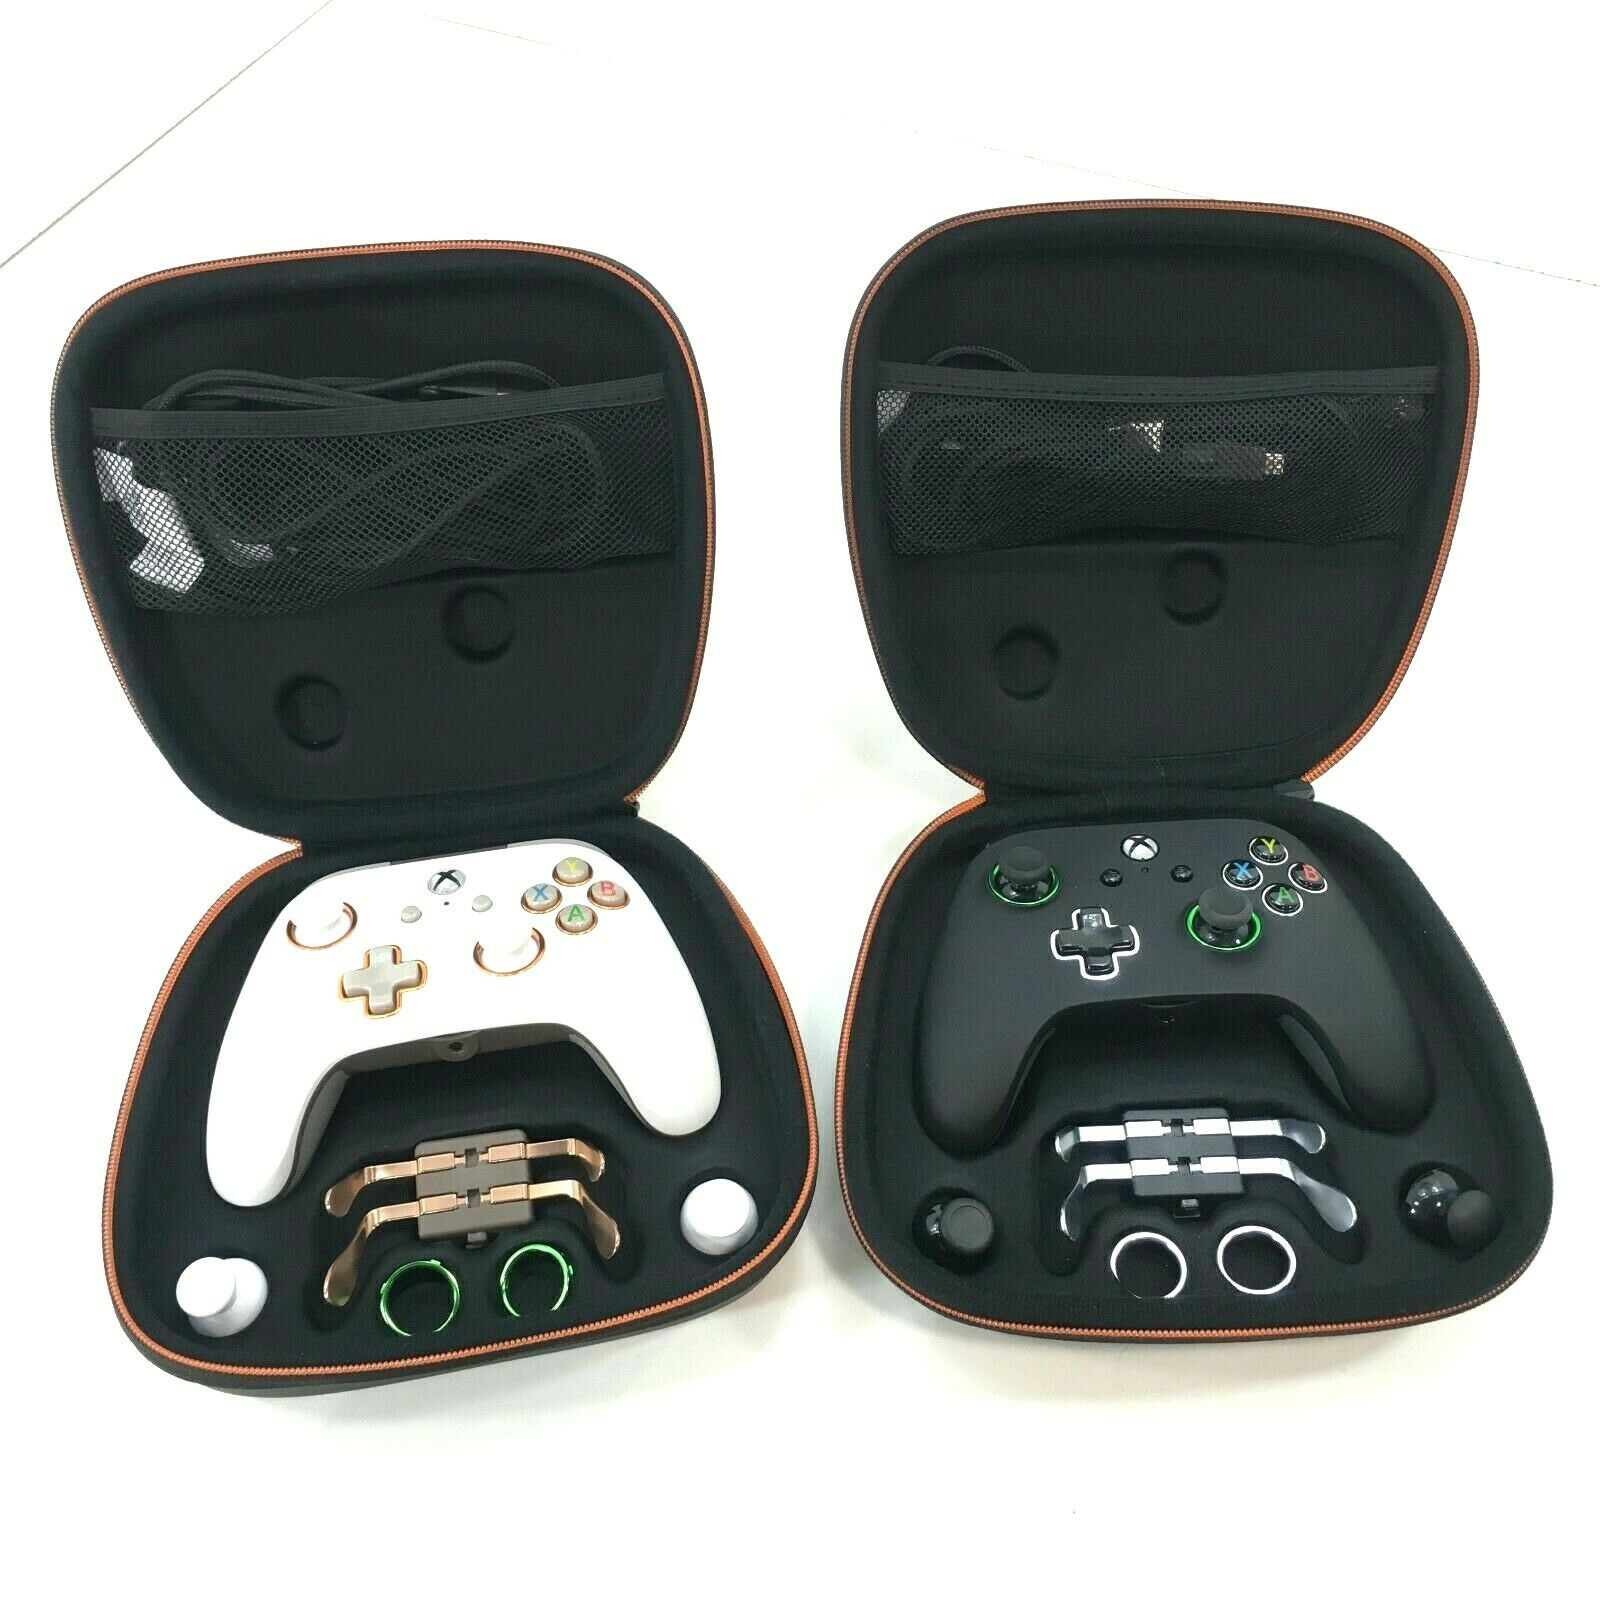 (2) Power A Fusion Pro White & Black Wired Controllers for Xbox One S X w/ Cases